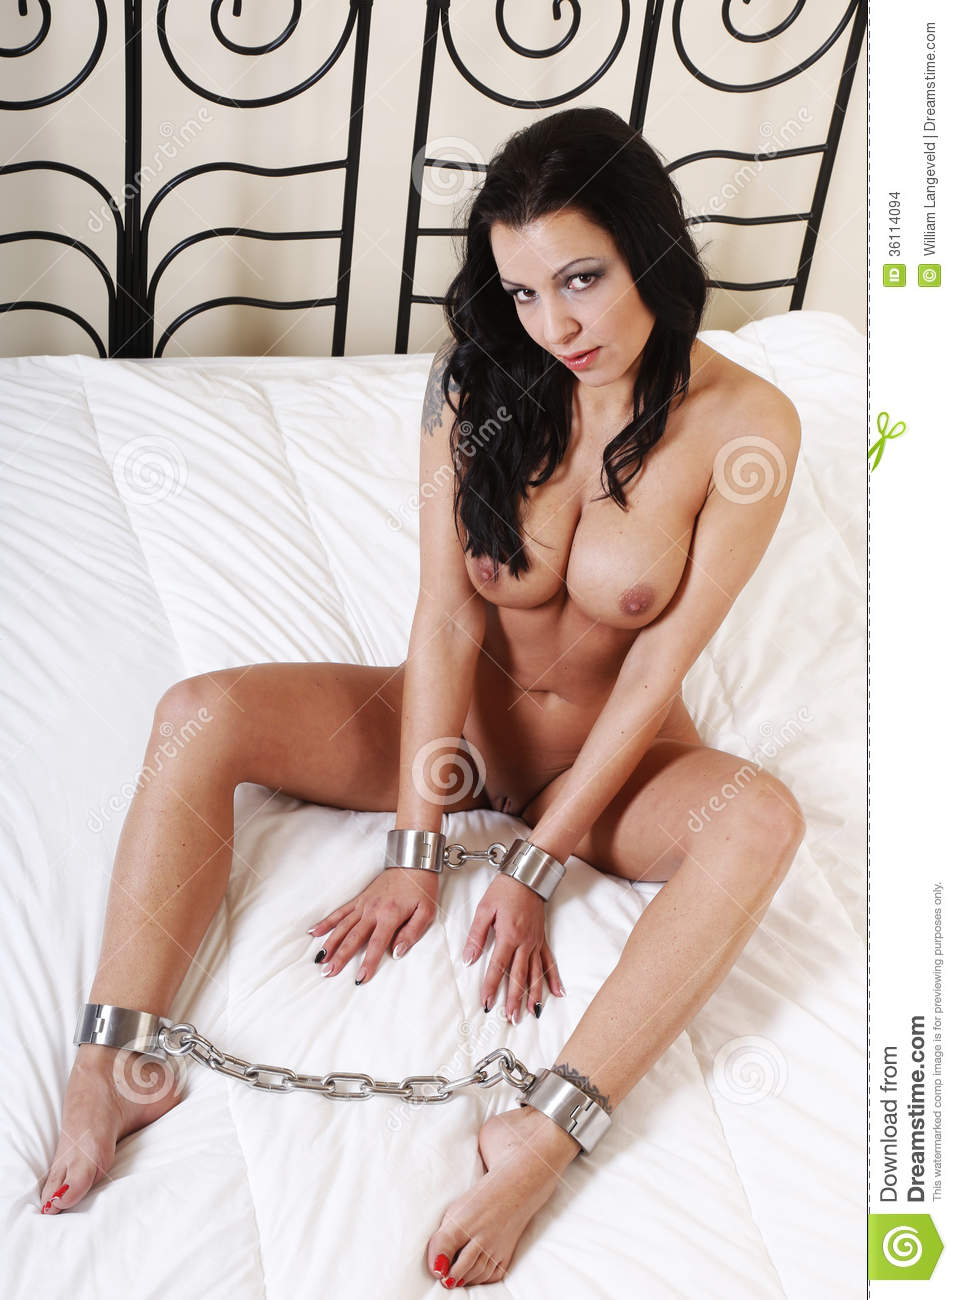 Beautful Nude Or Naked Woman Handcuffed Stock Photo -7122